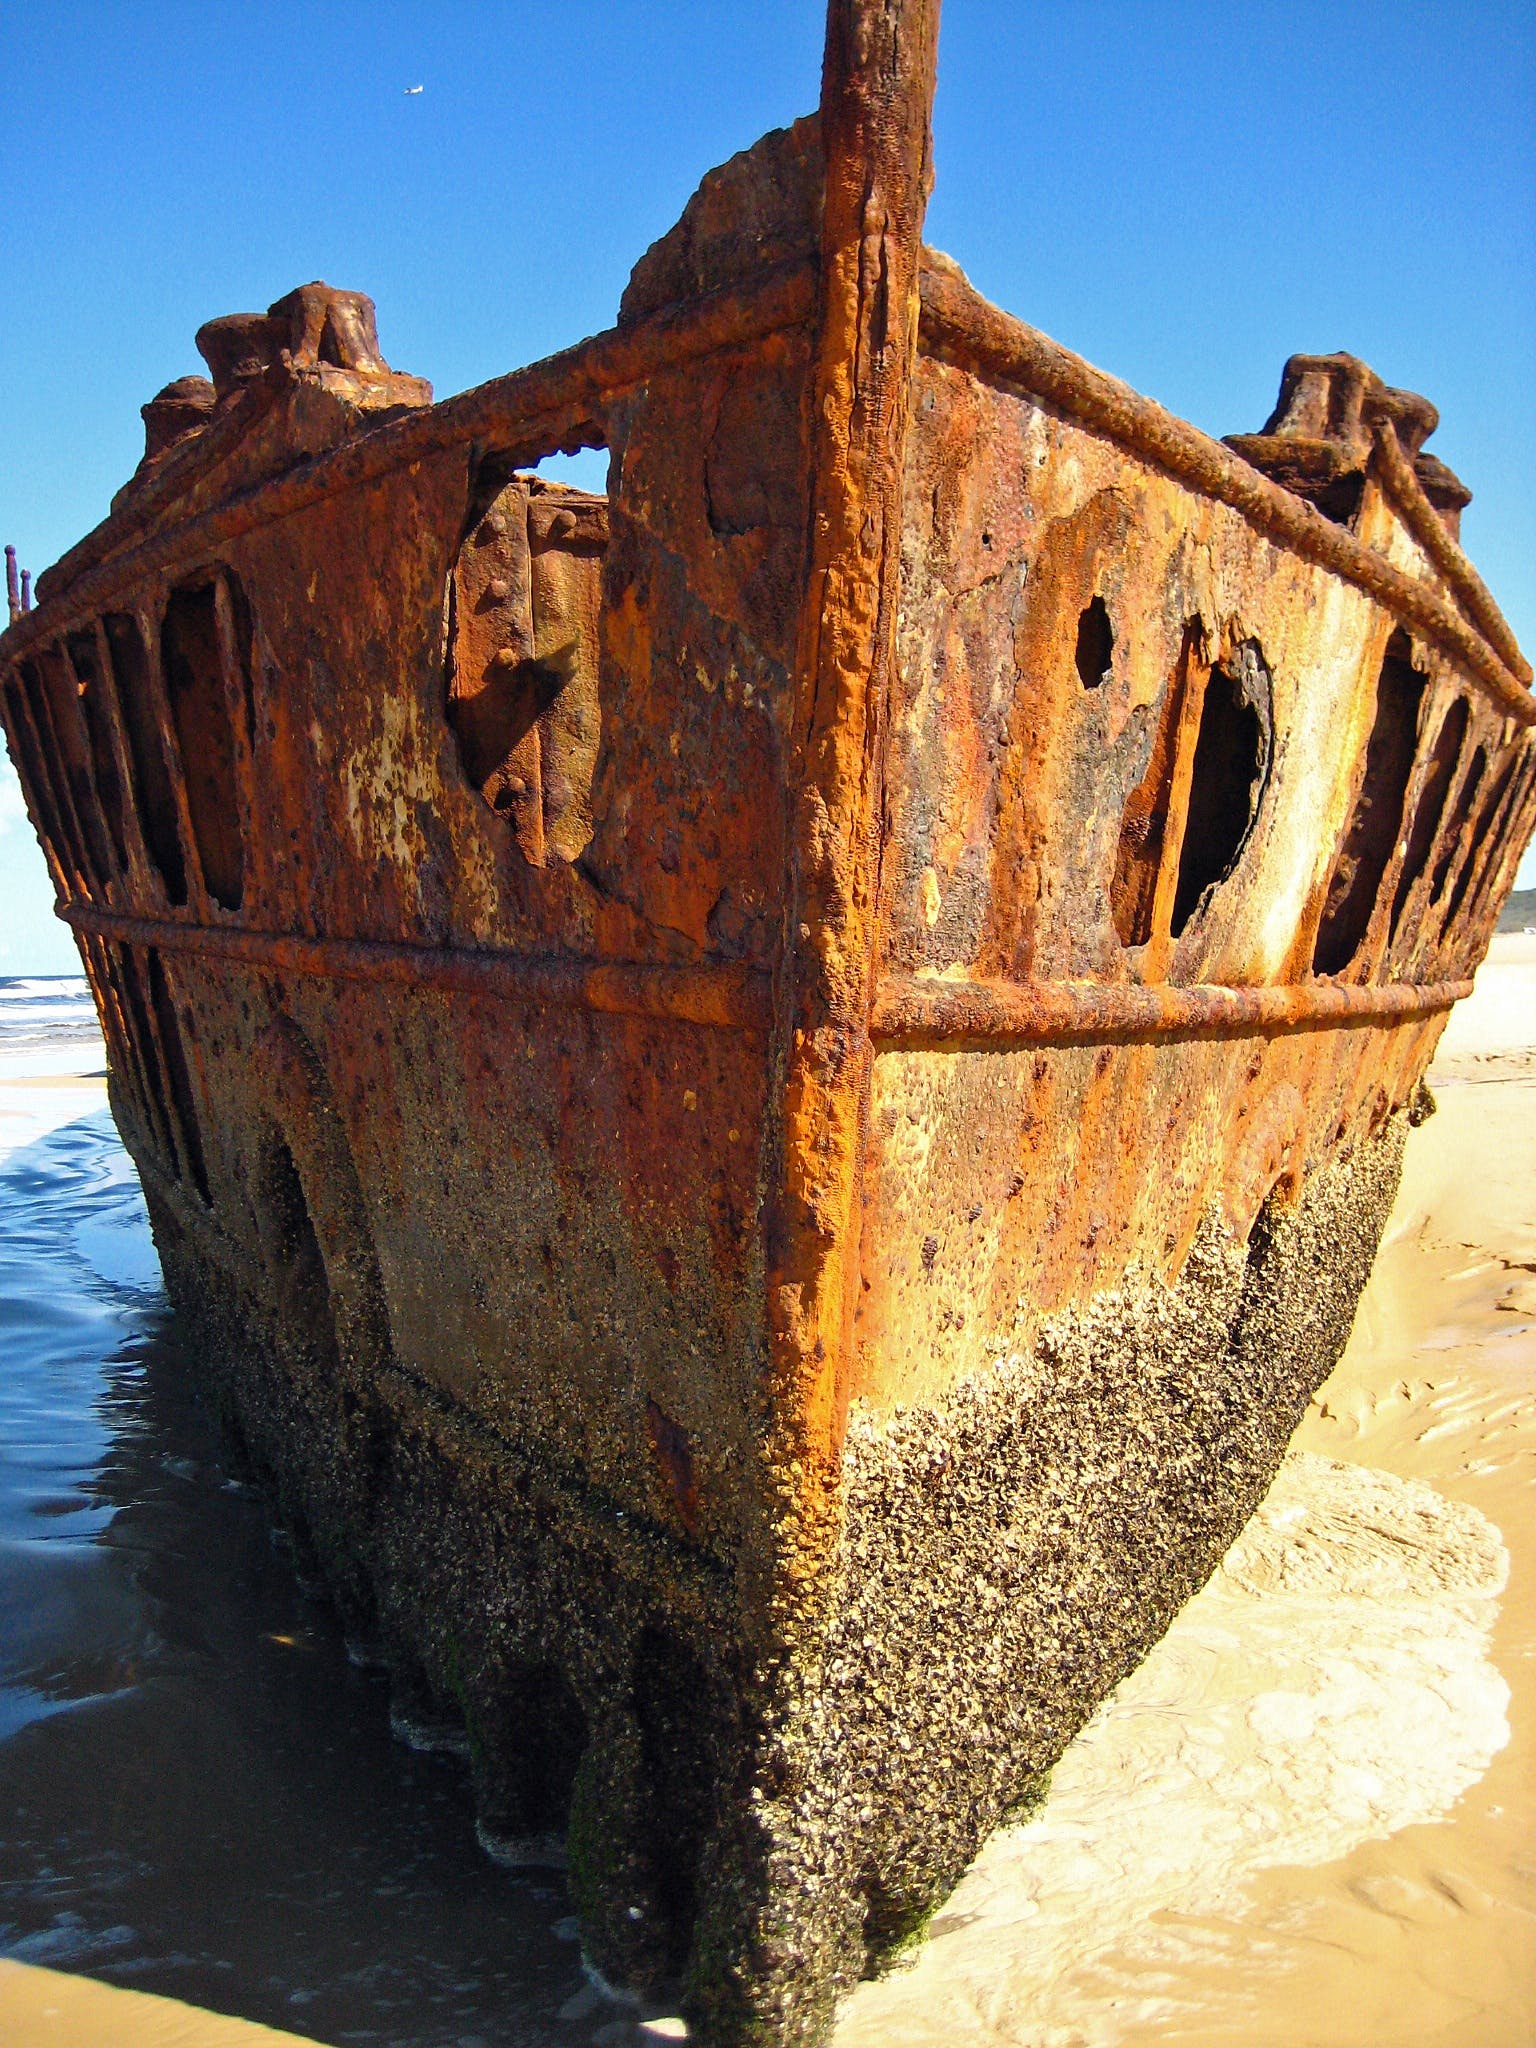 Brown Metal Shipwreck on Seashore during Daytime